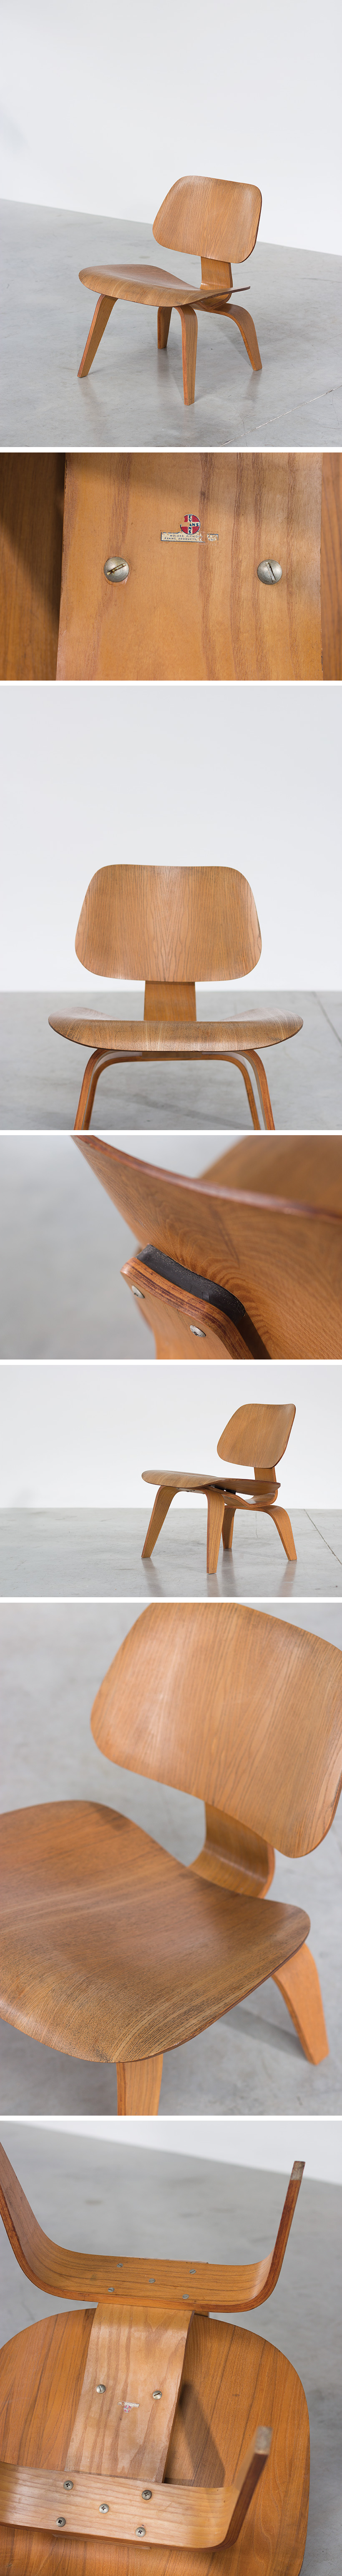 Charles eames plywood chair lcw evans products company - Chaise eames belgique ...